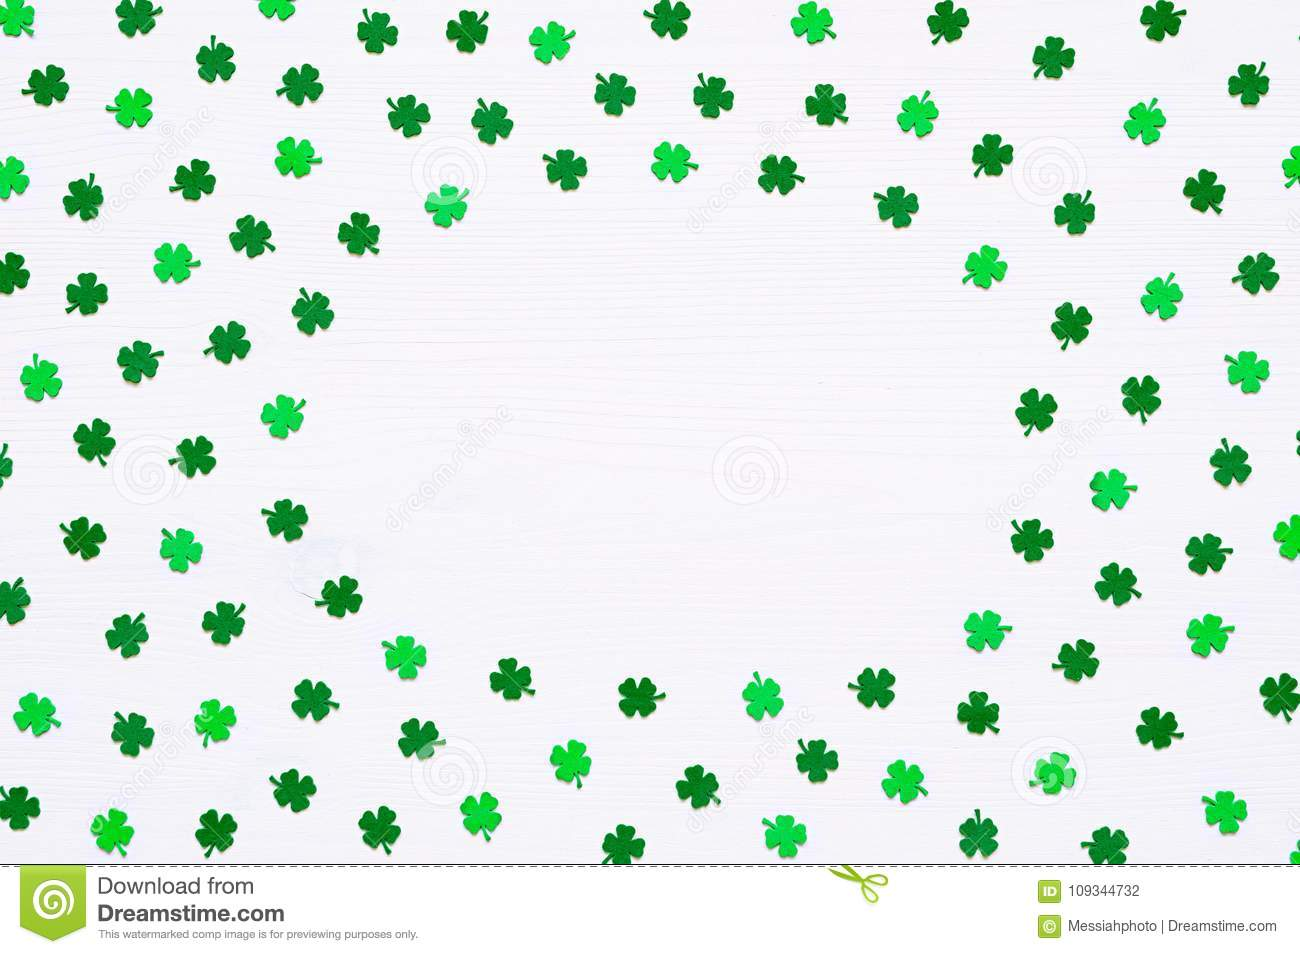 St Patrick`s Day background with green quatrefoils on white background, round border